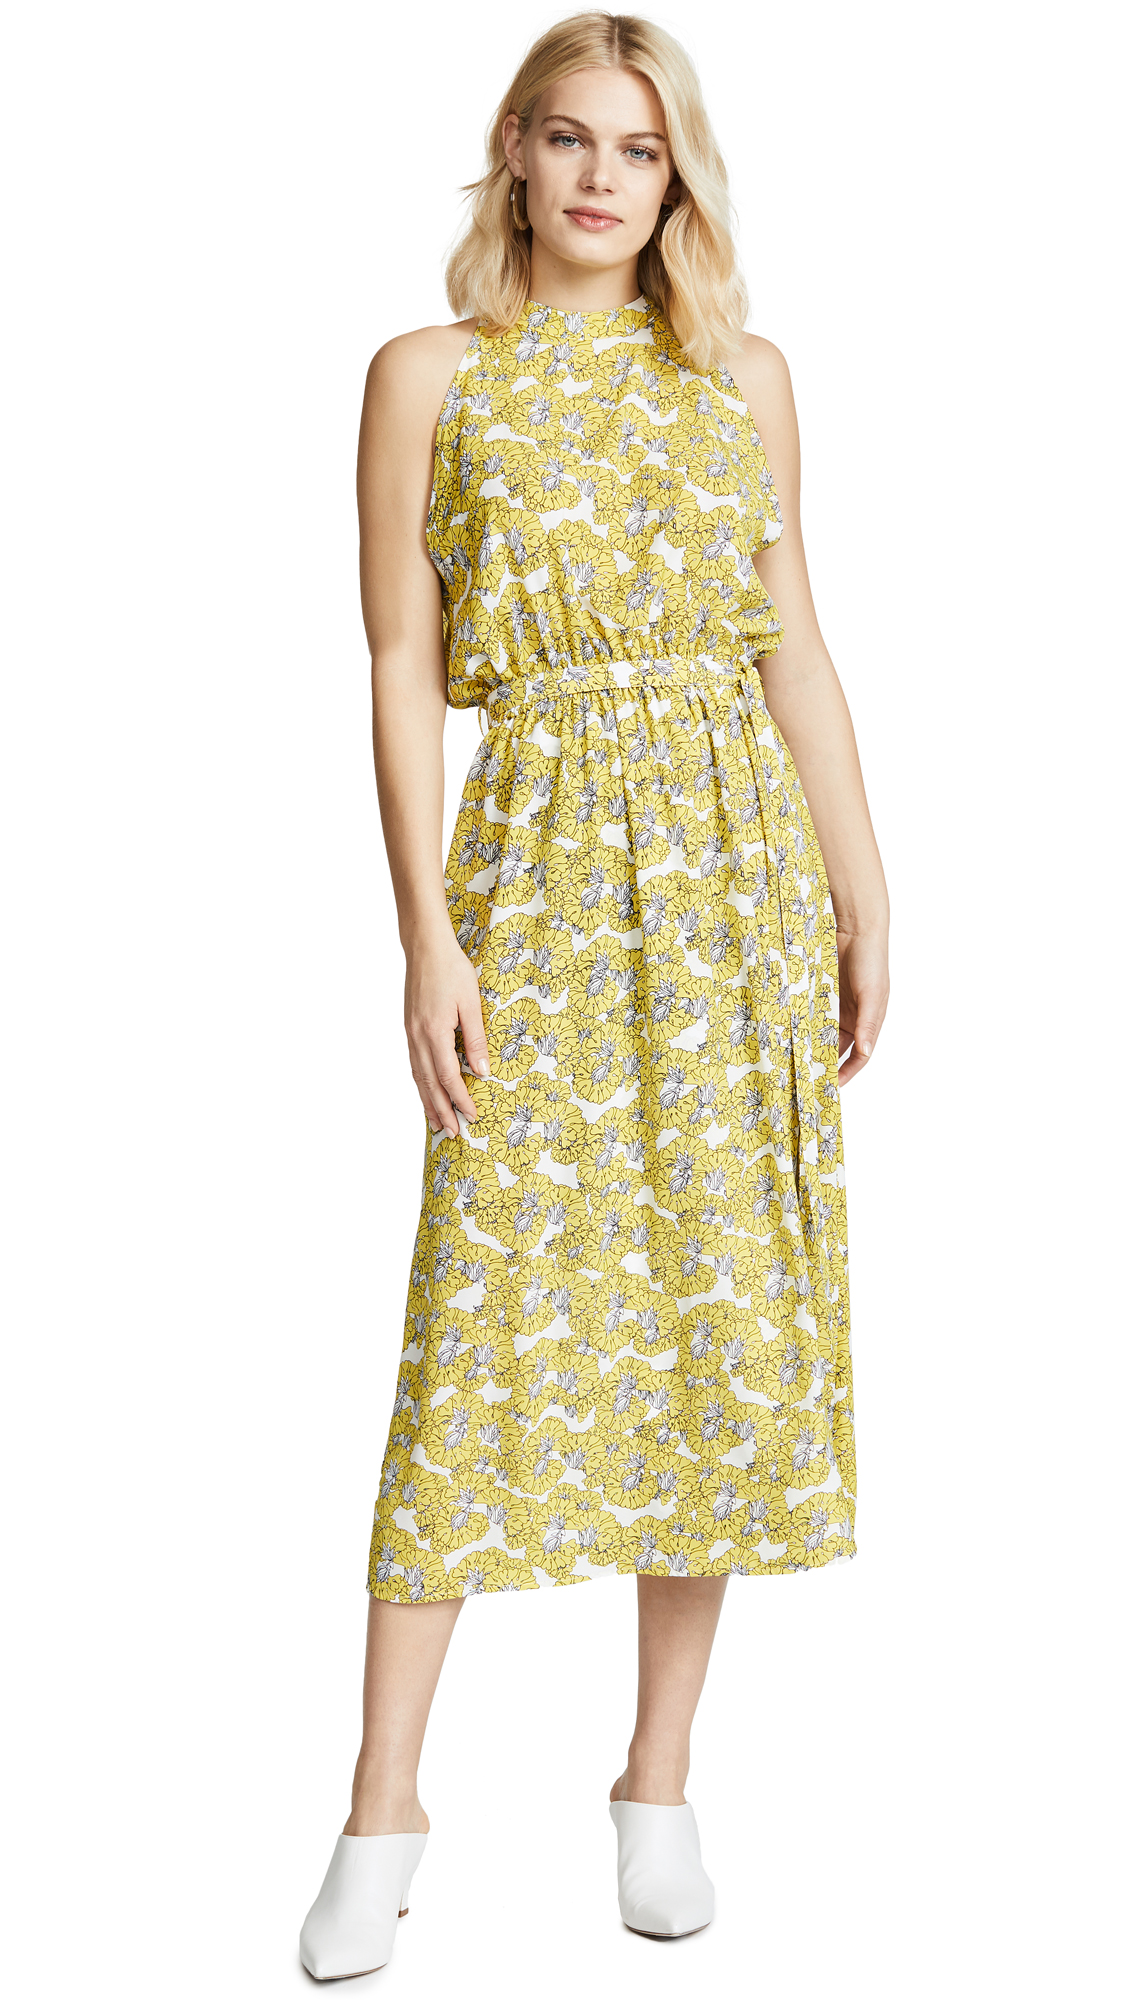 Robert Rodriguez Dania Floral Dress In Yellow Floral